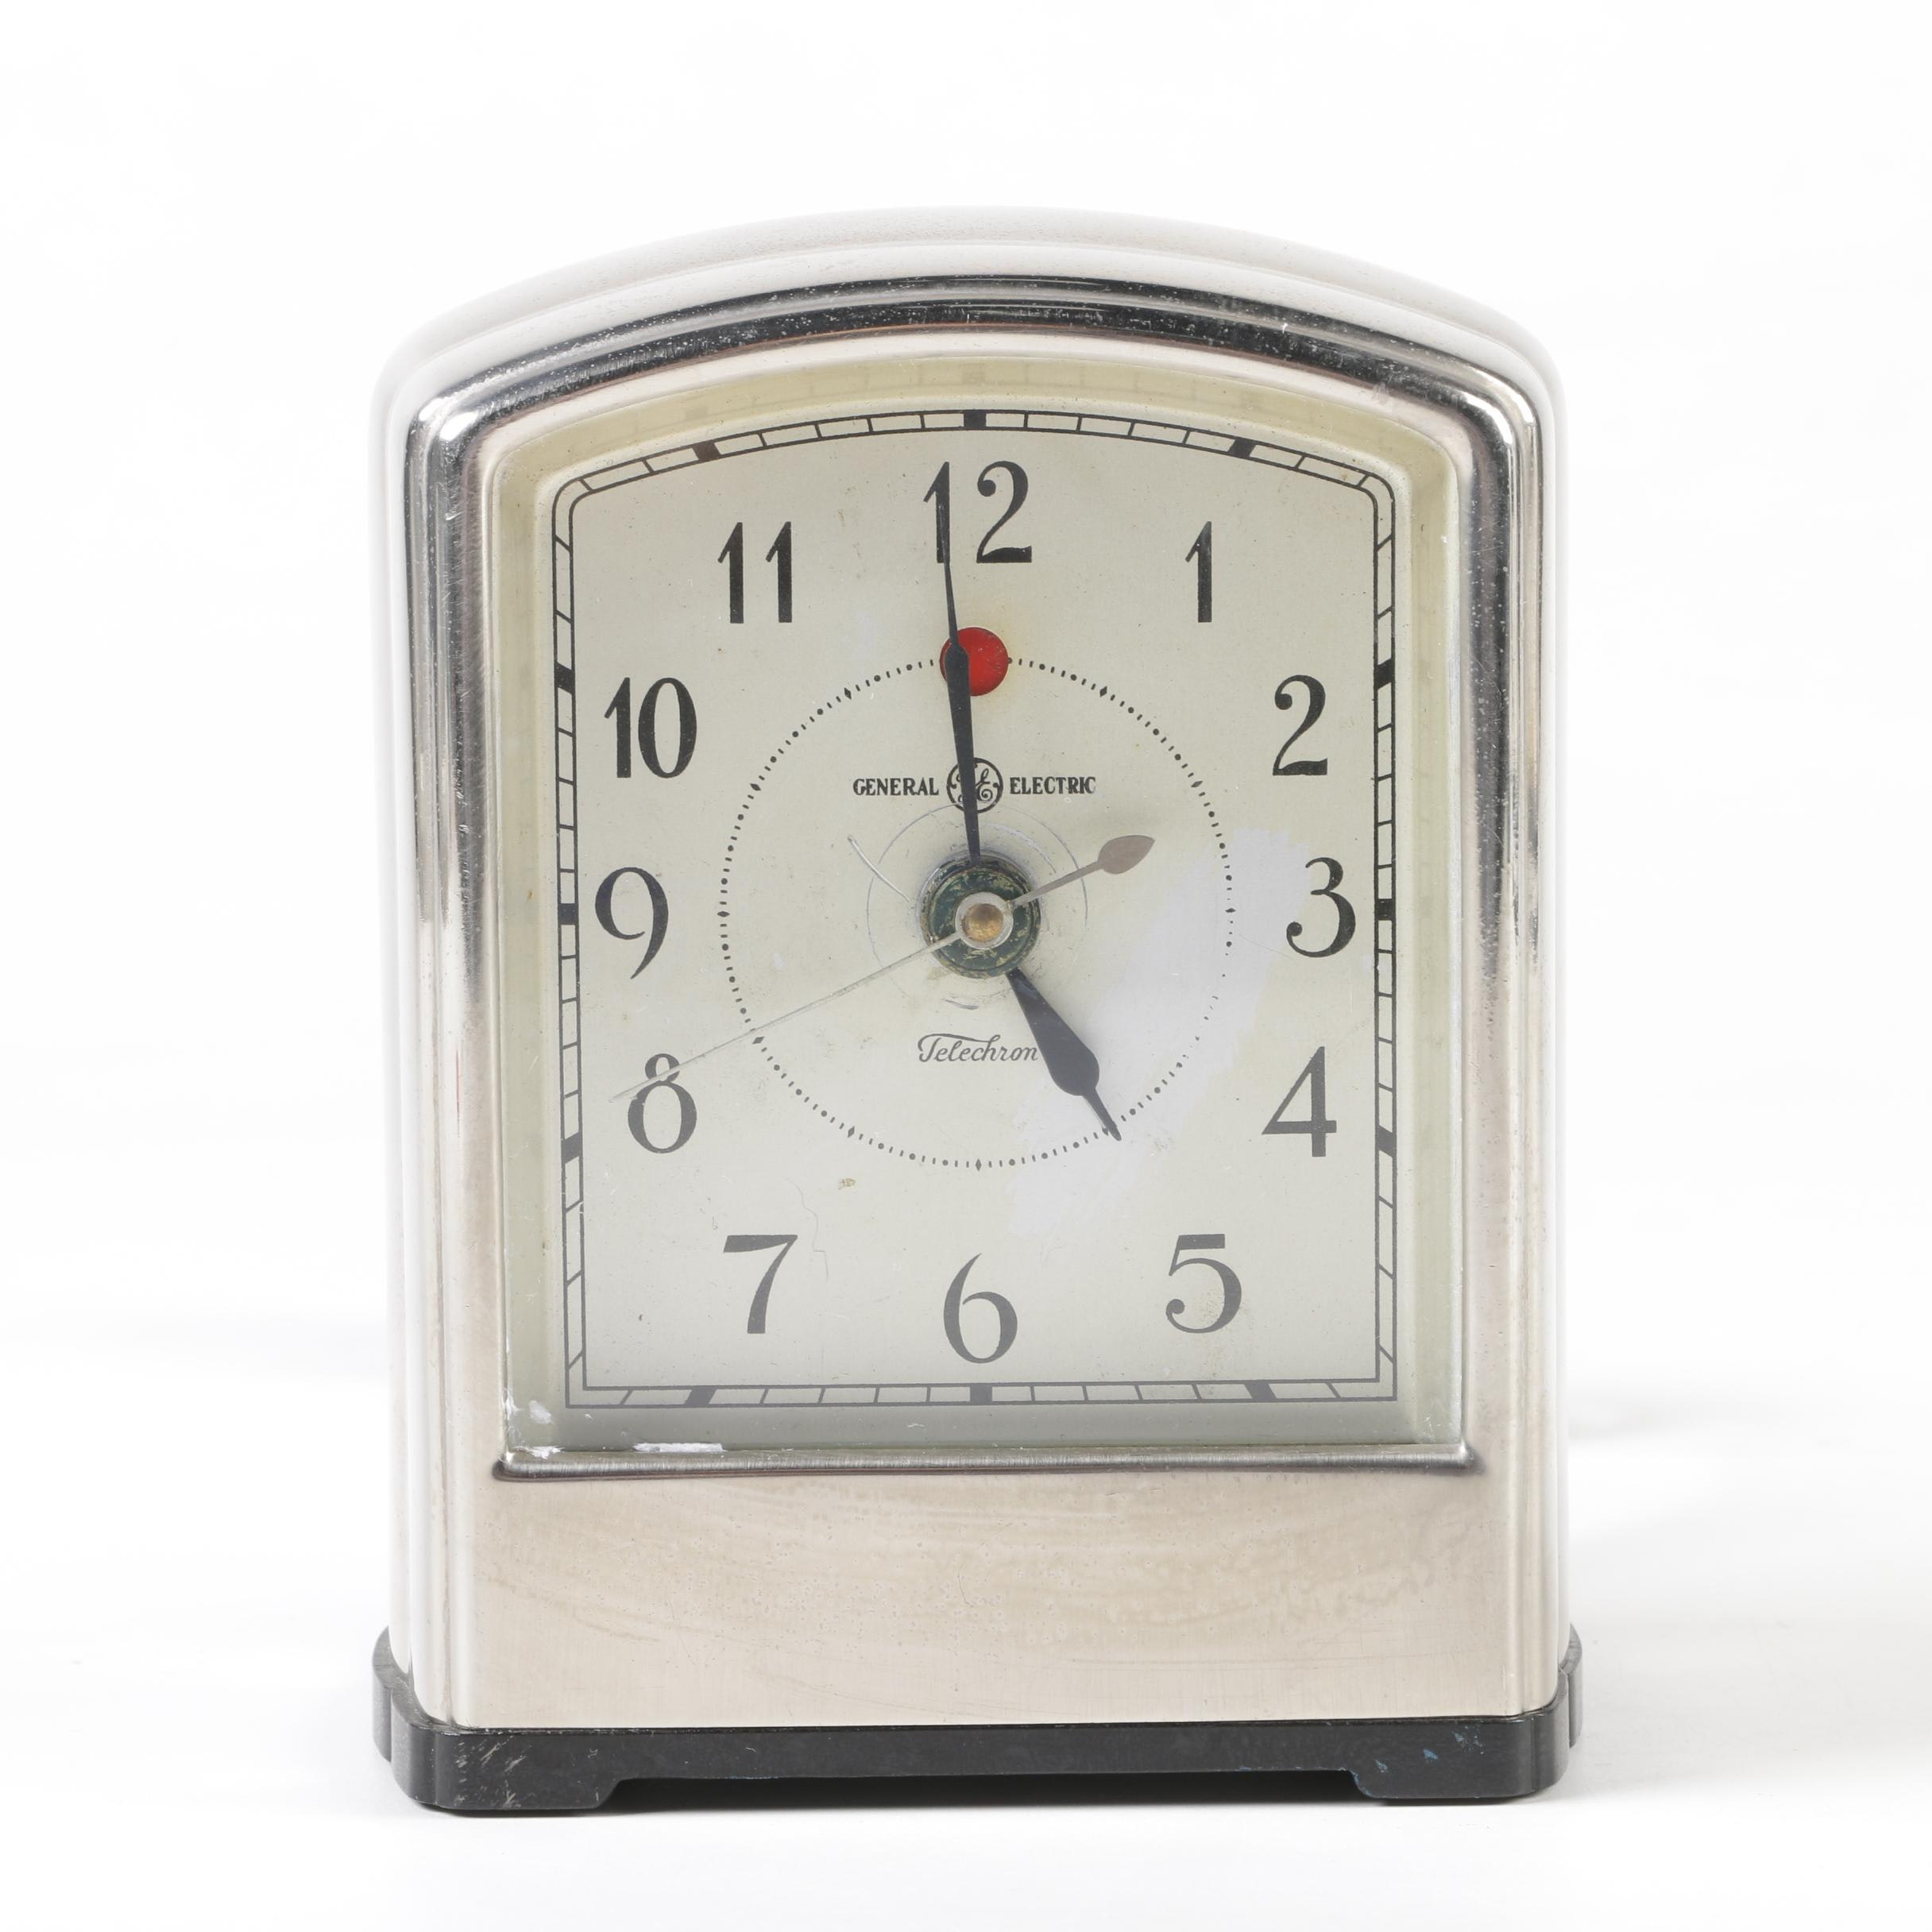 General Electric AB-712 Telechron Alarm Clock, circa 1930